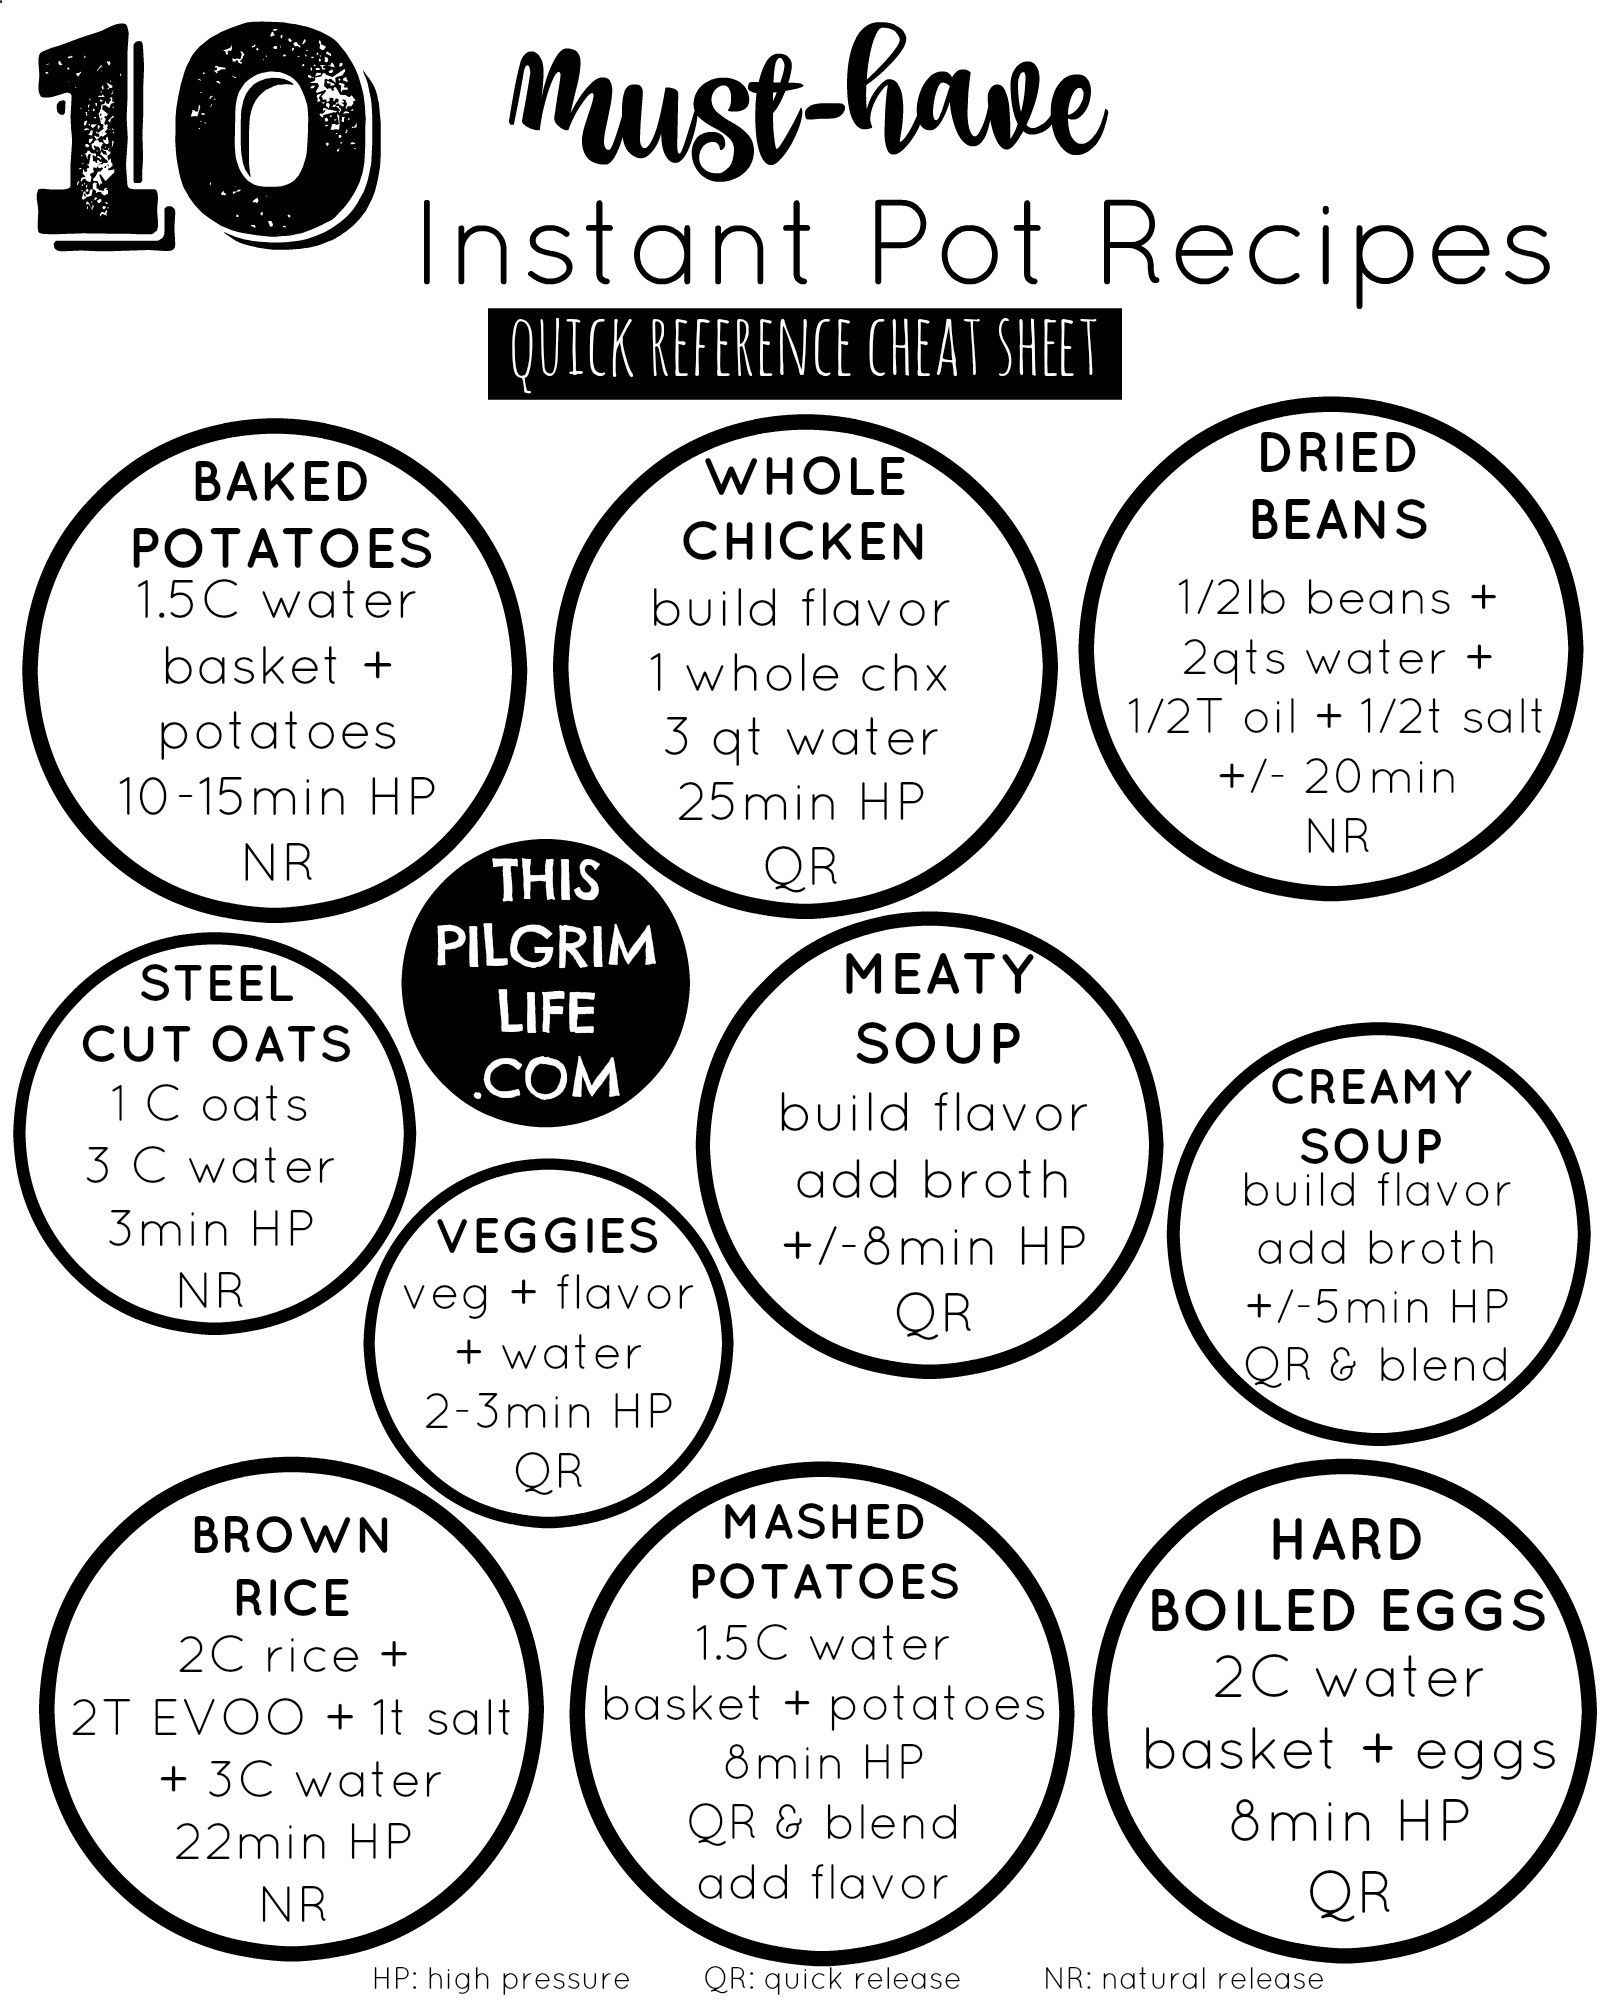 Whether You Are A New Instant Pot Owner Or Have Been Using